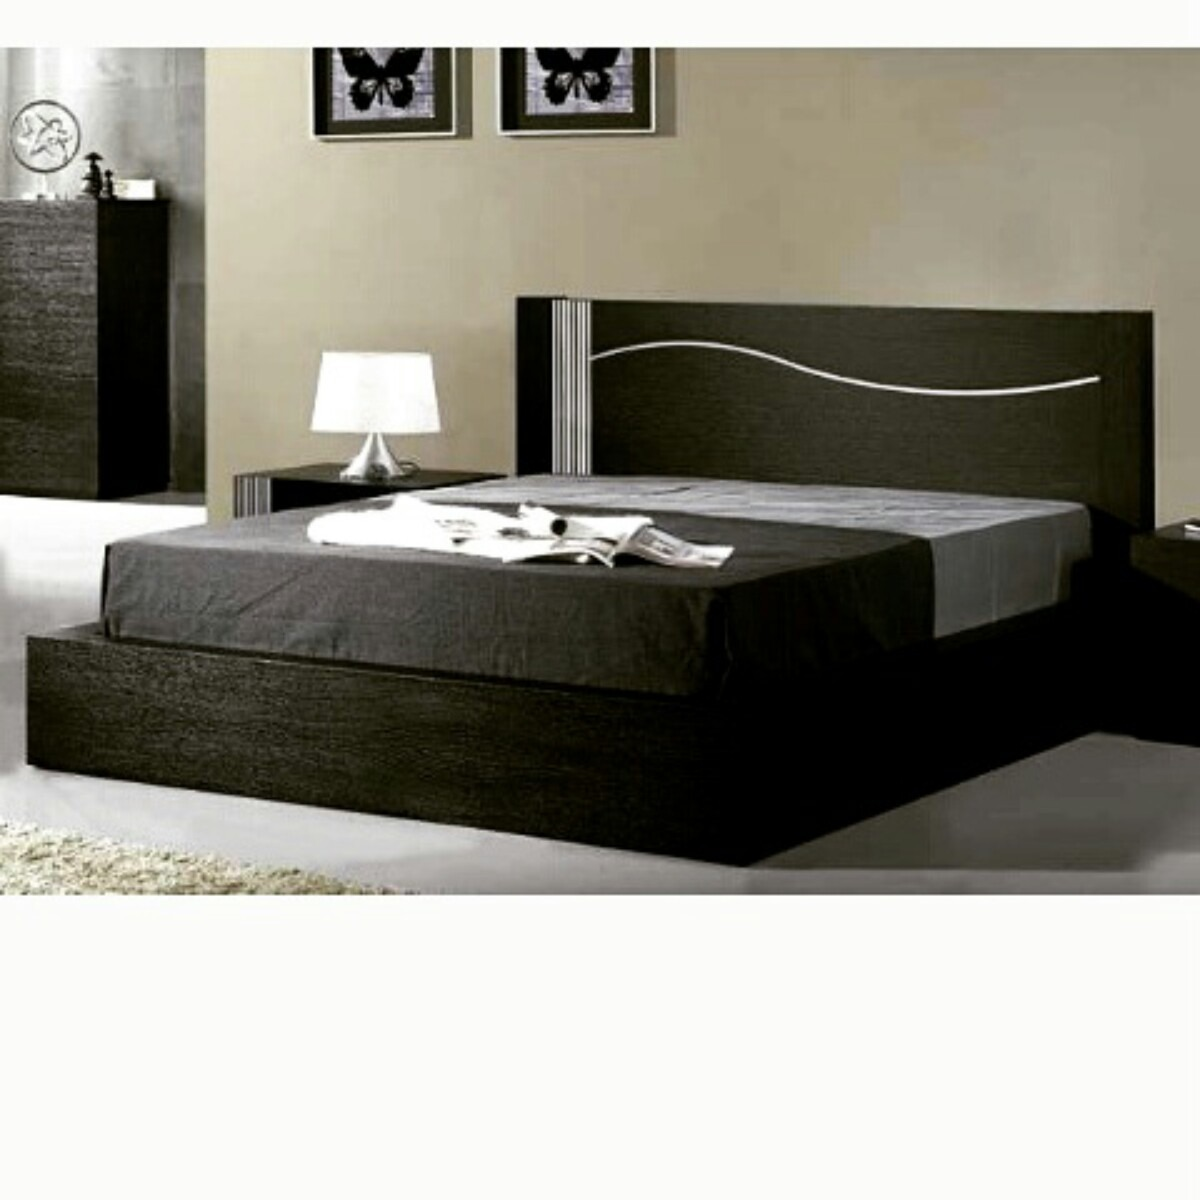 Camas matrimoniales queen y king size bs en for Cama king paraiso